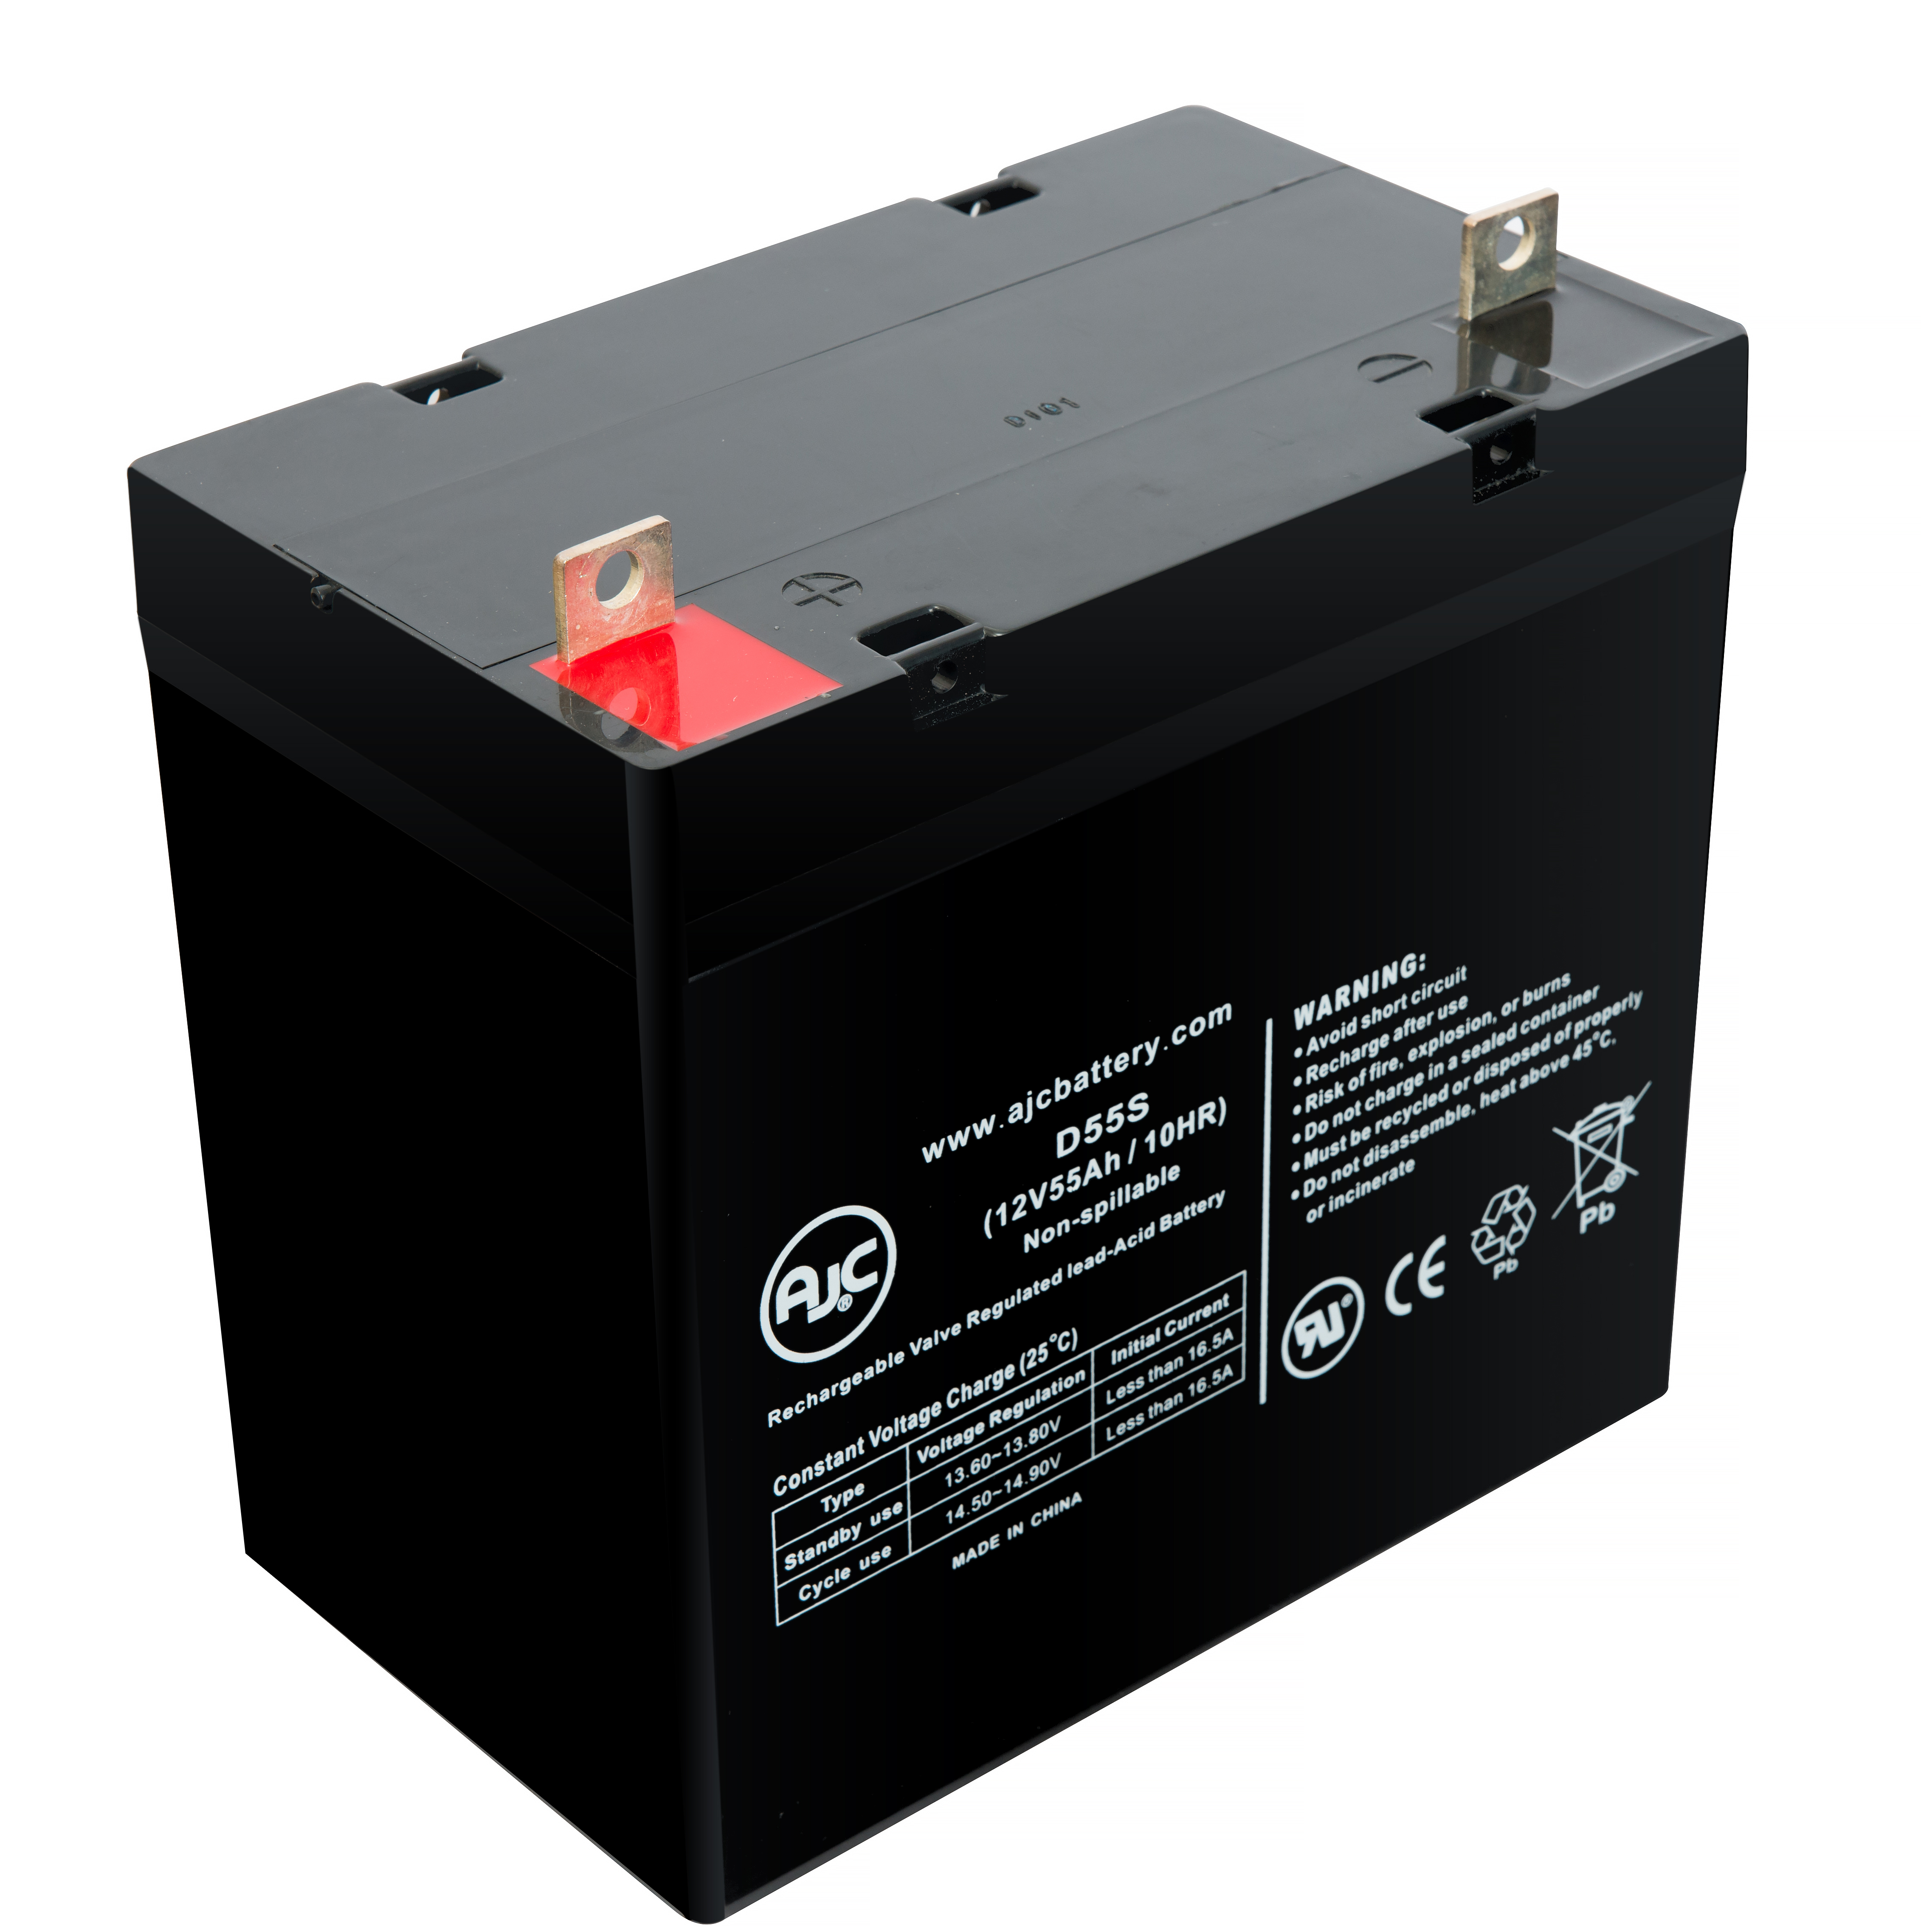 Invacare M91 12V 55Ah Wheelchair Battery - This is an AJC...